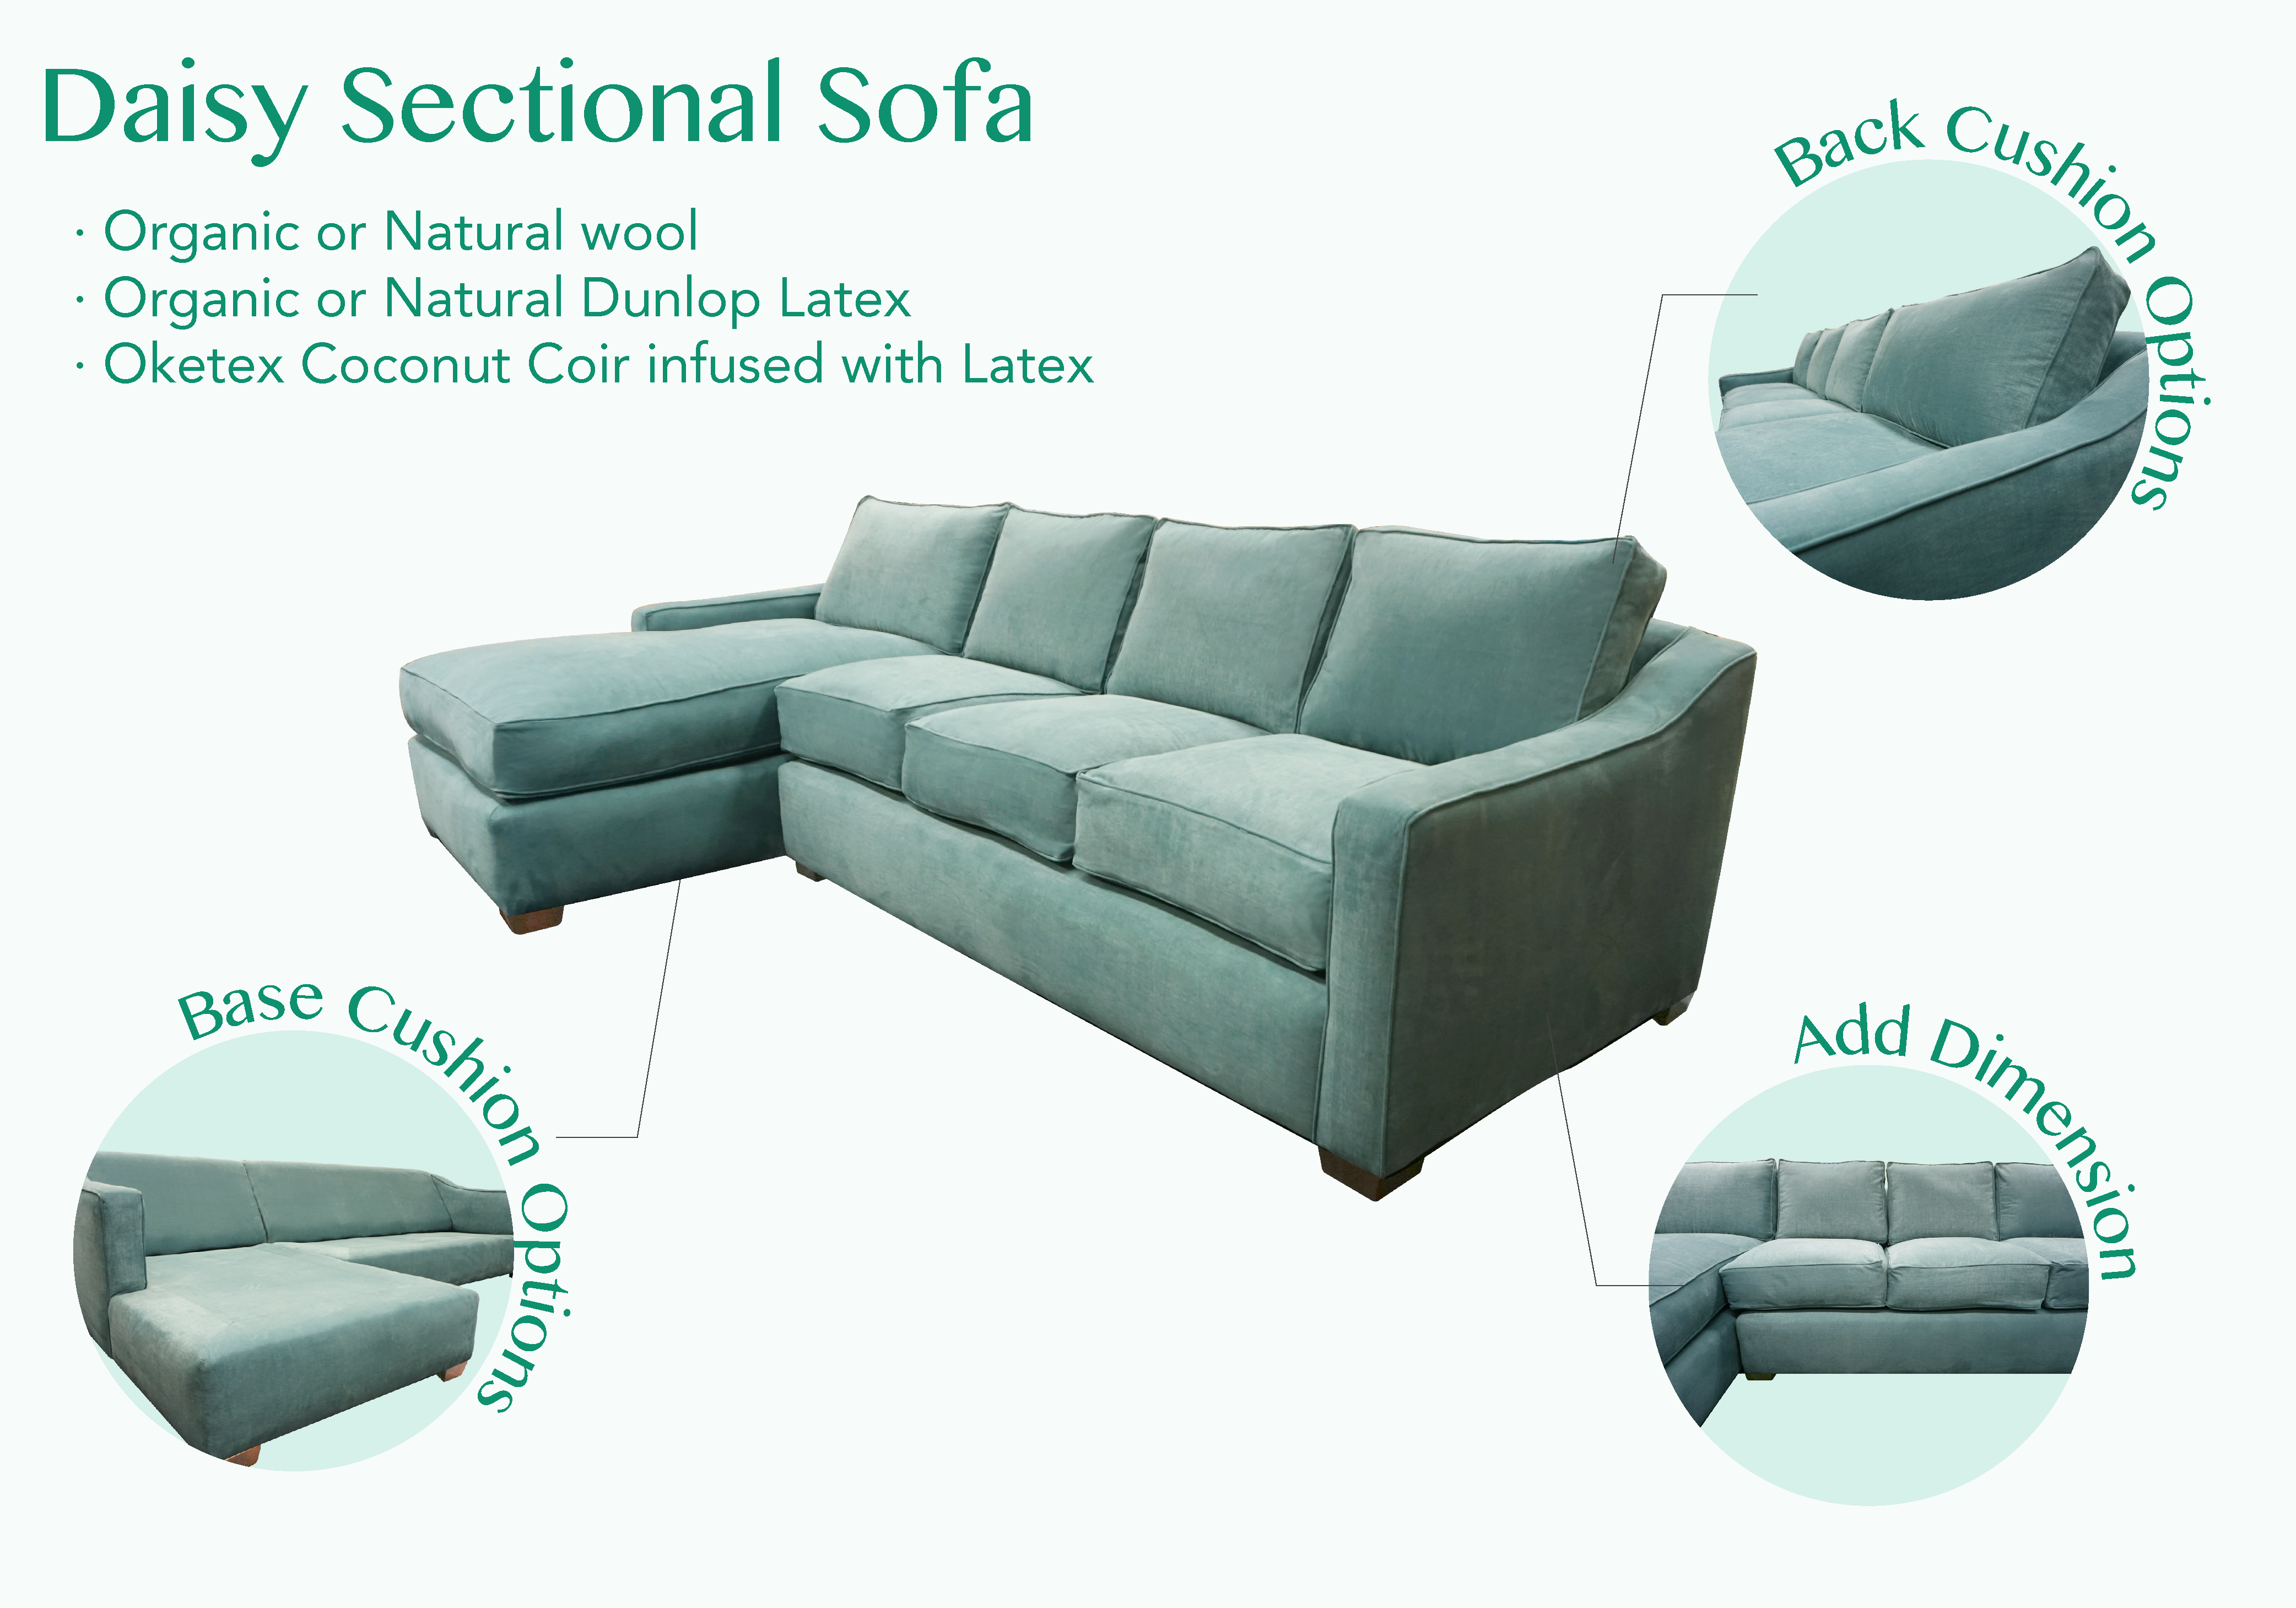 Fantastic Daisy Sectional Sofa Organic And Natural Ingredients In 2019 Machost Co Dining Chair Design Ideas Machostcouk